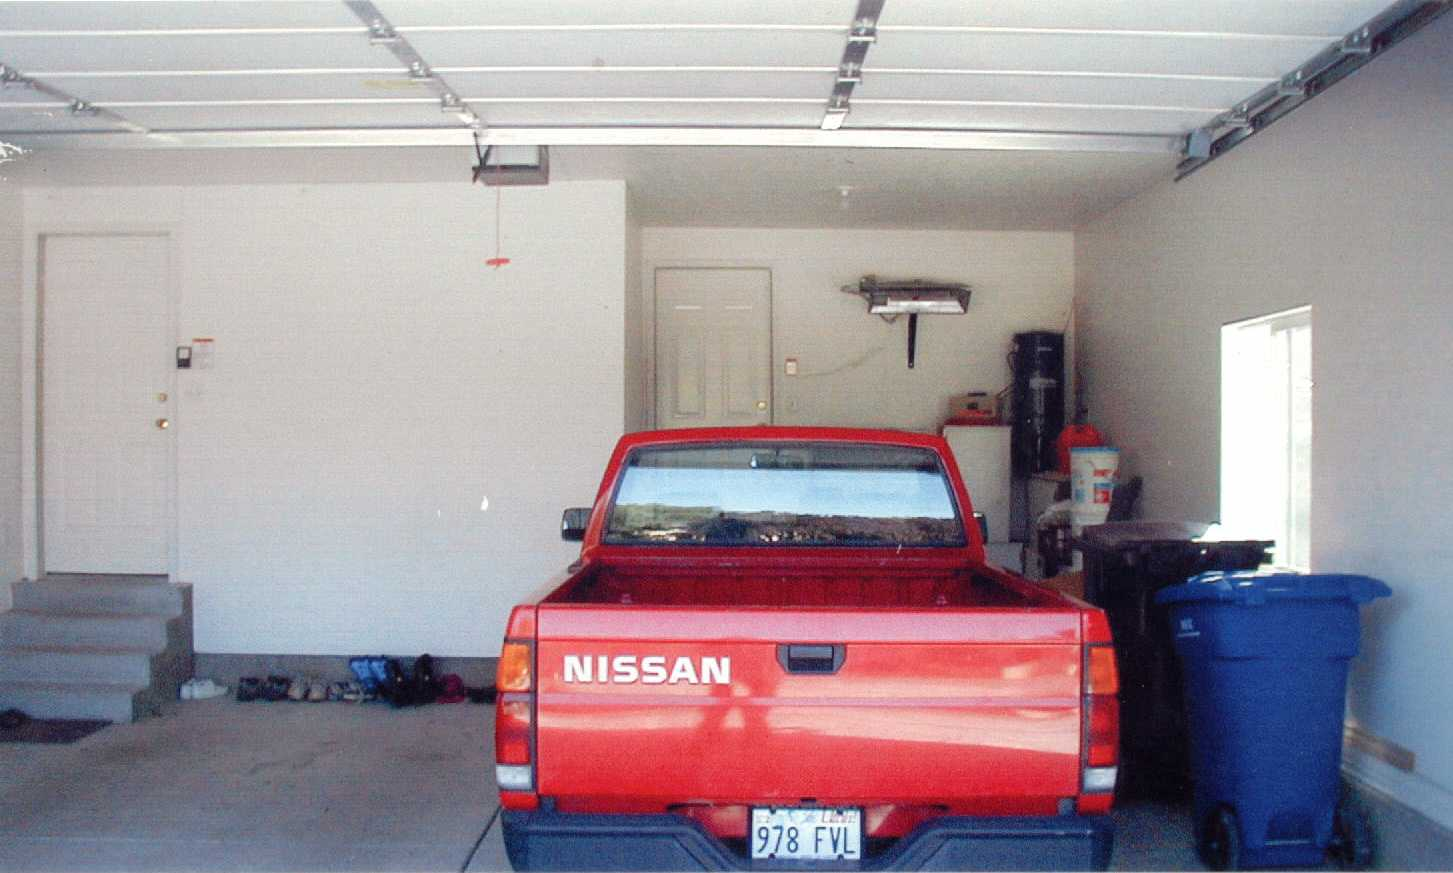 Garage Heater Cost To Run Heatersunlimited The Most Affordable Garage Heater